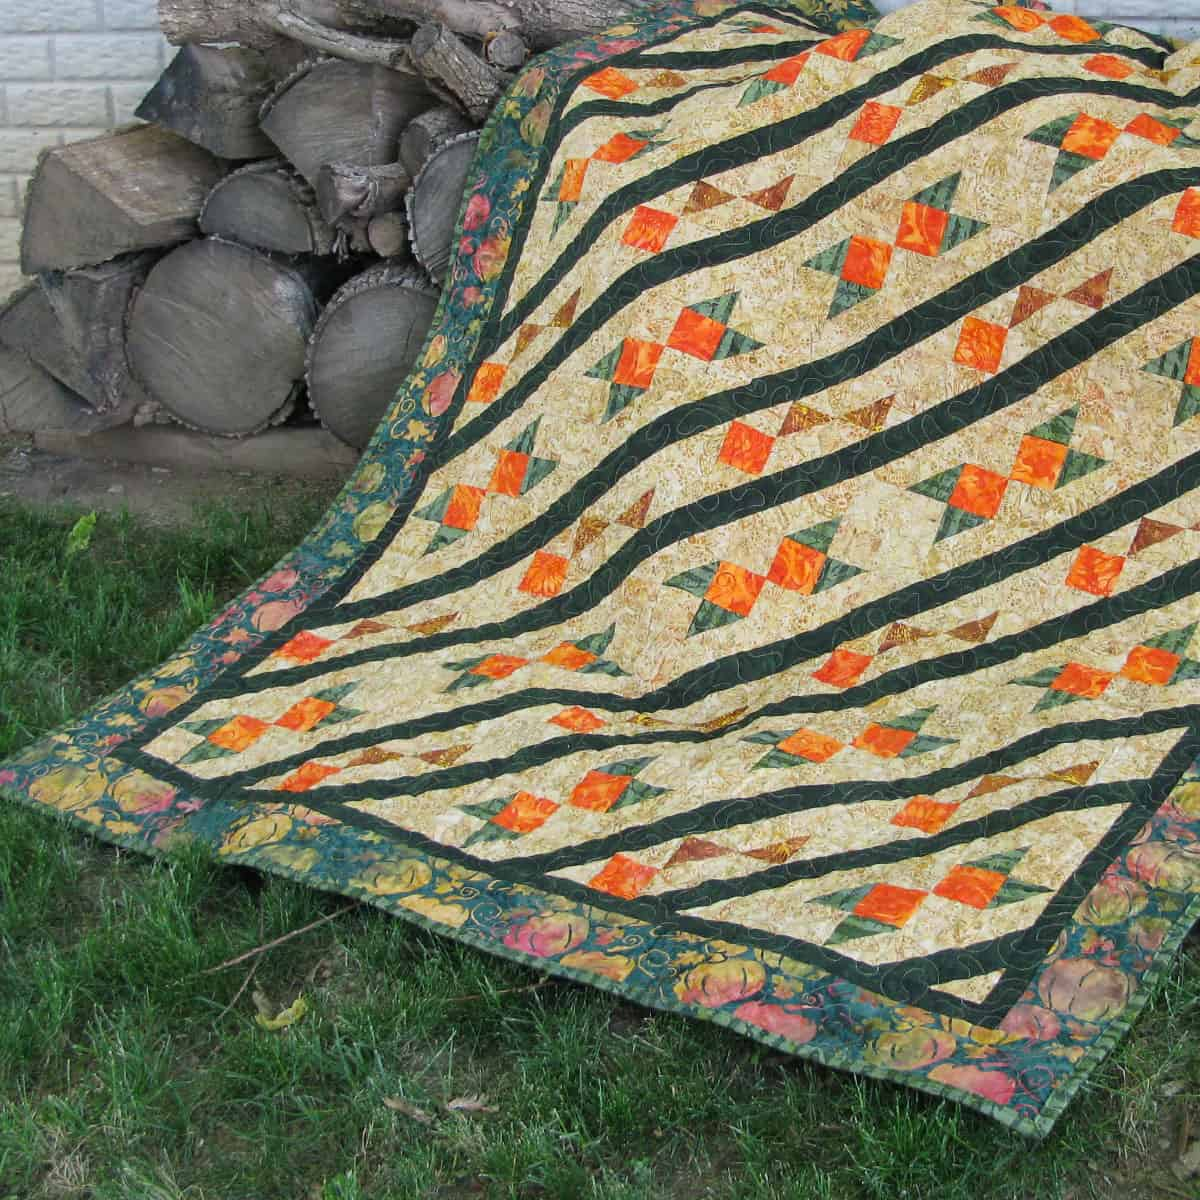 Arrowhead quilt on woodpile